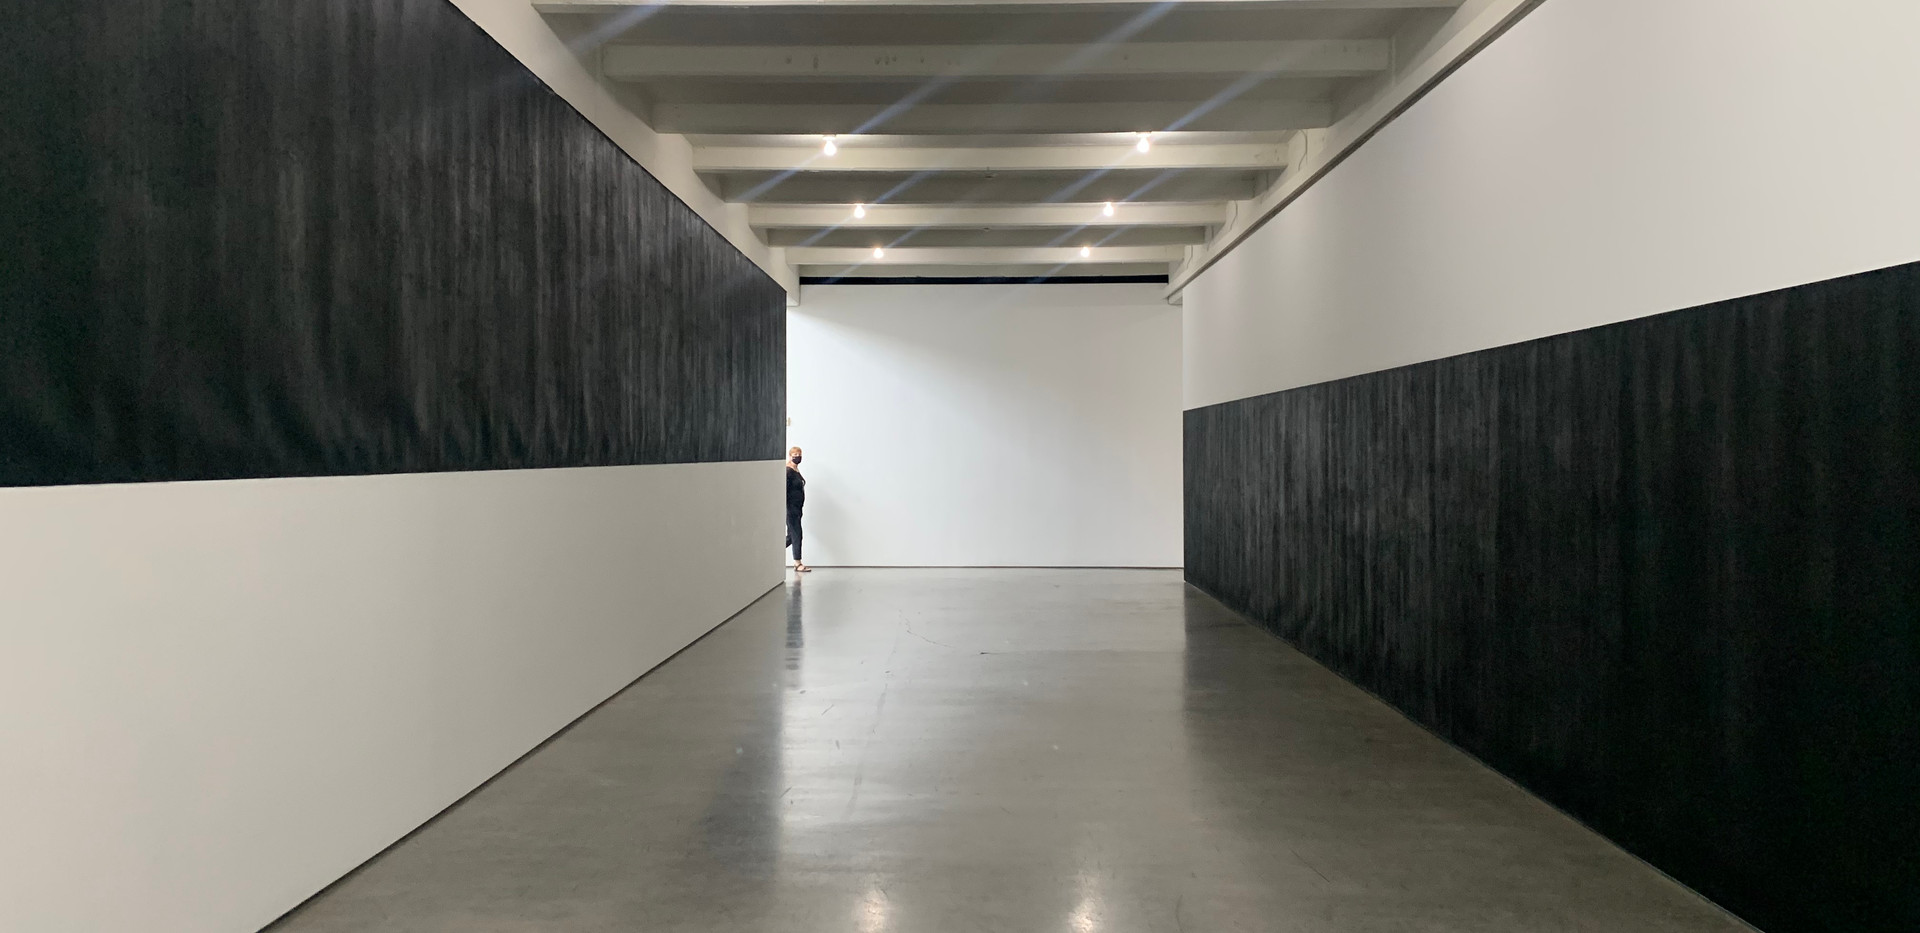 Richard Serra, Consequence, 2003